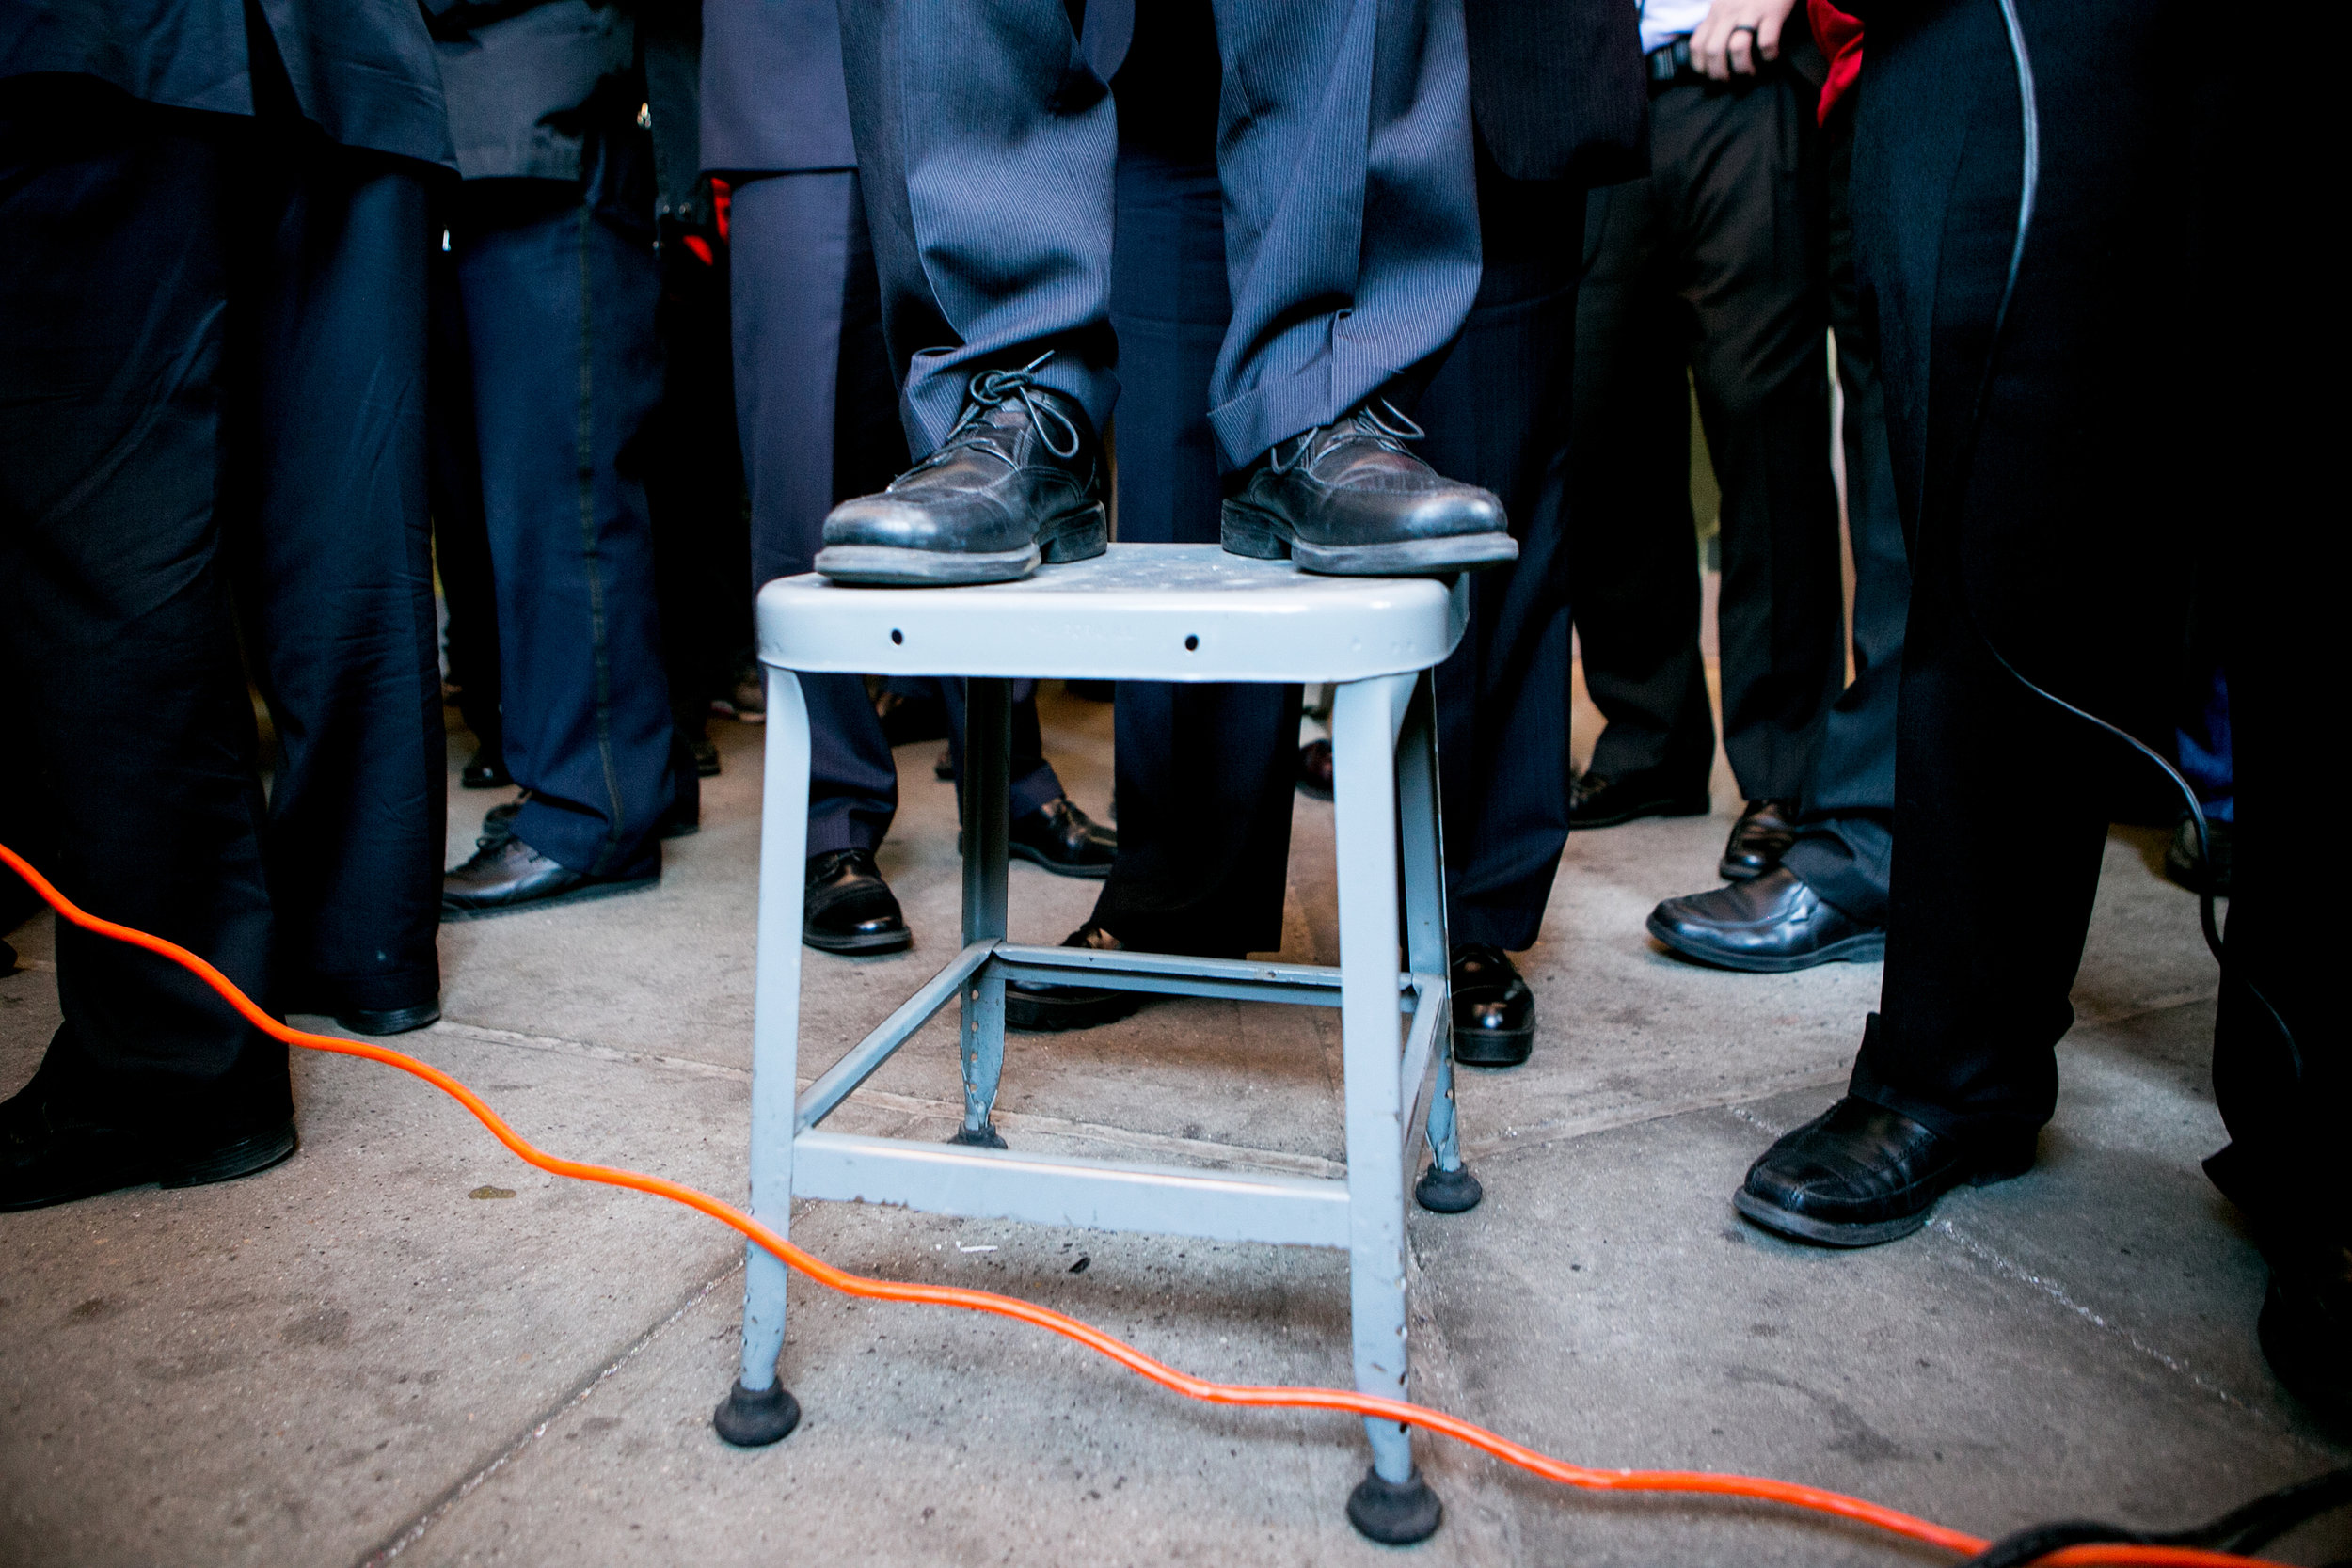 With his scuffed up shoes, surrounded by Secret Service agents,Bernie climbed a top a stool to address a picket line with workers from Communication Workers of America in Brooklyn.